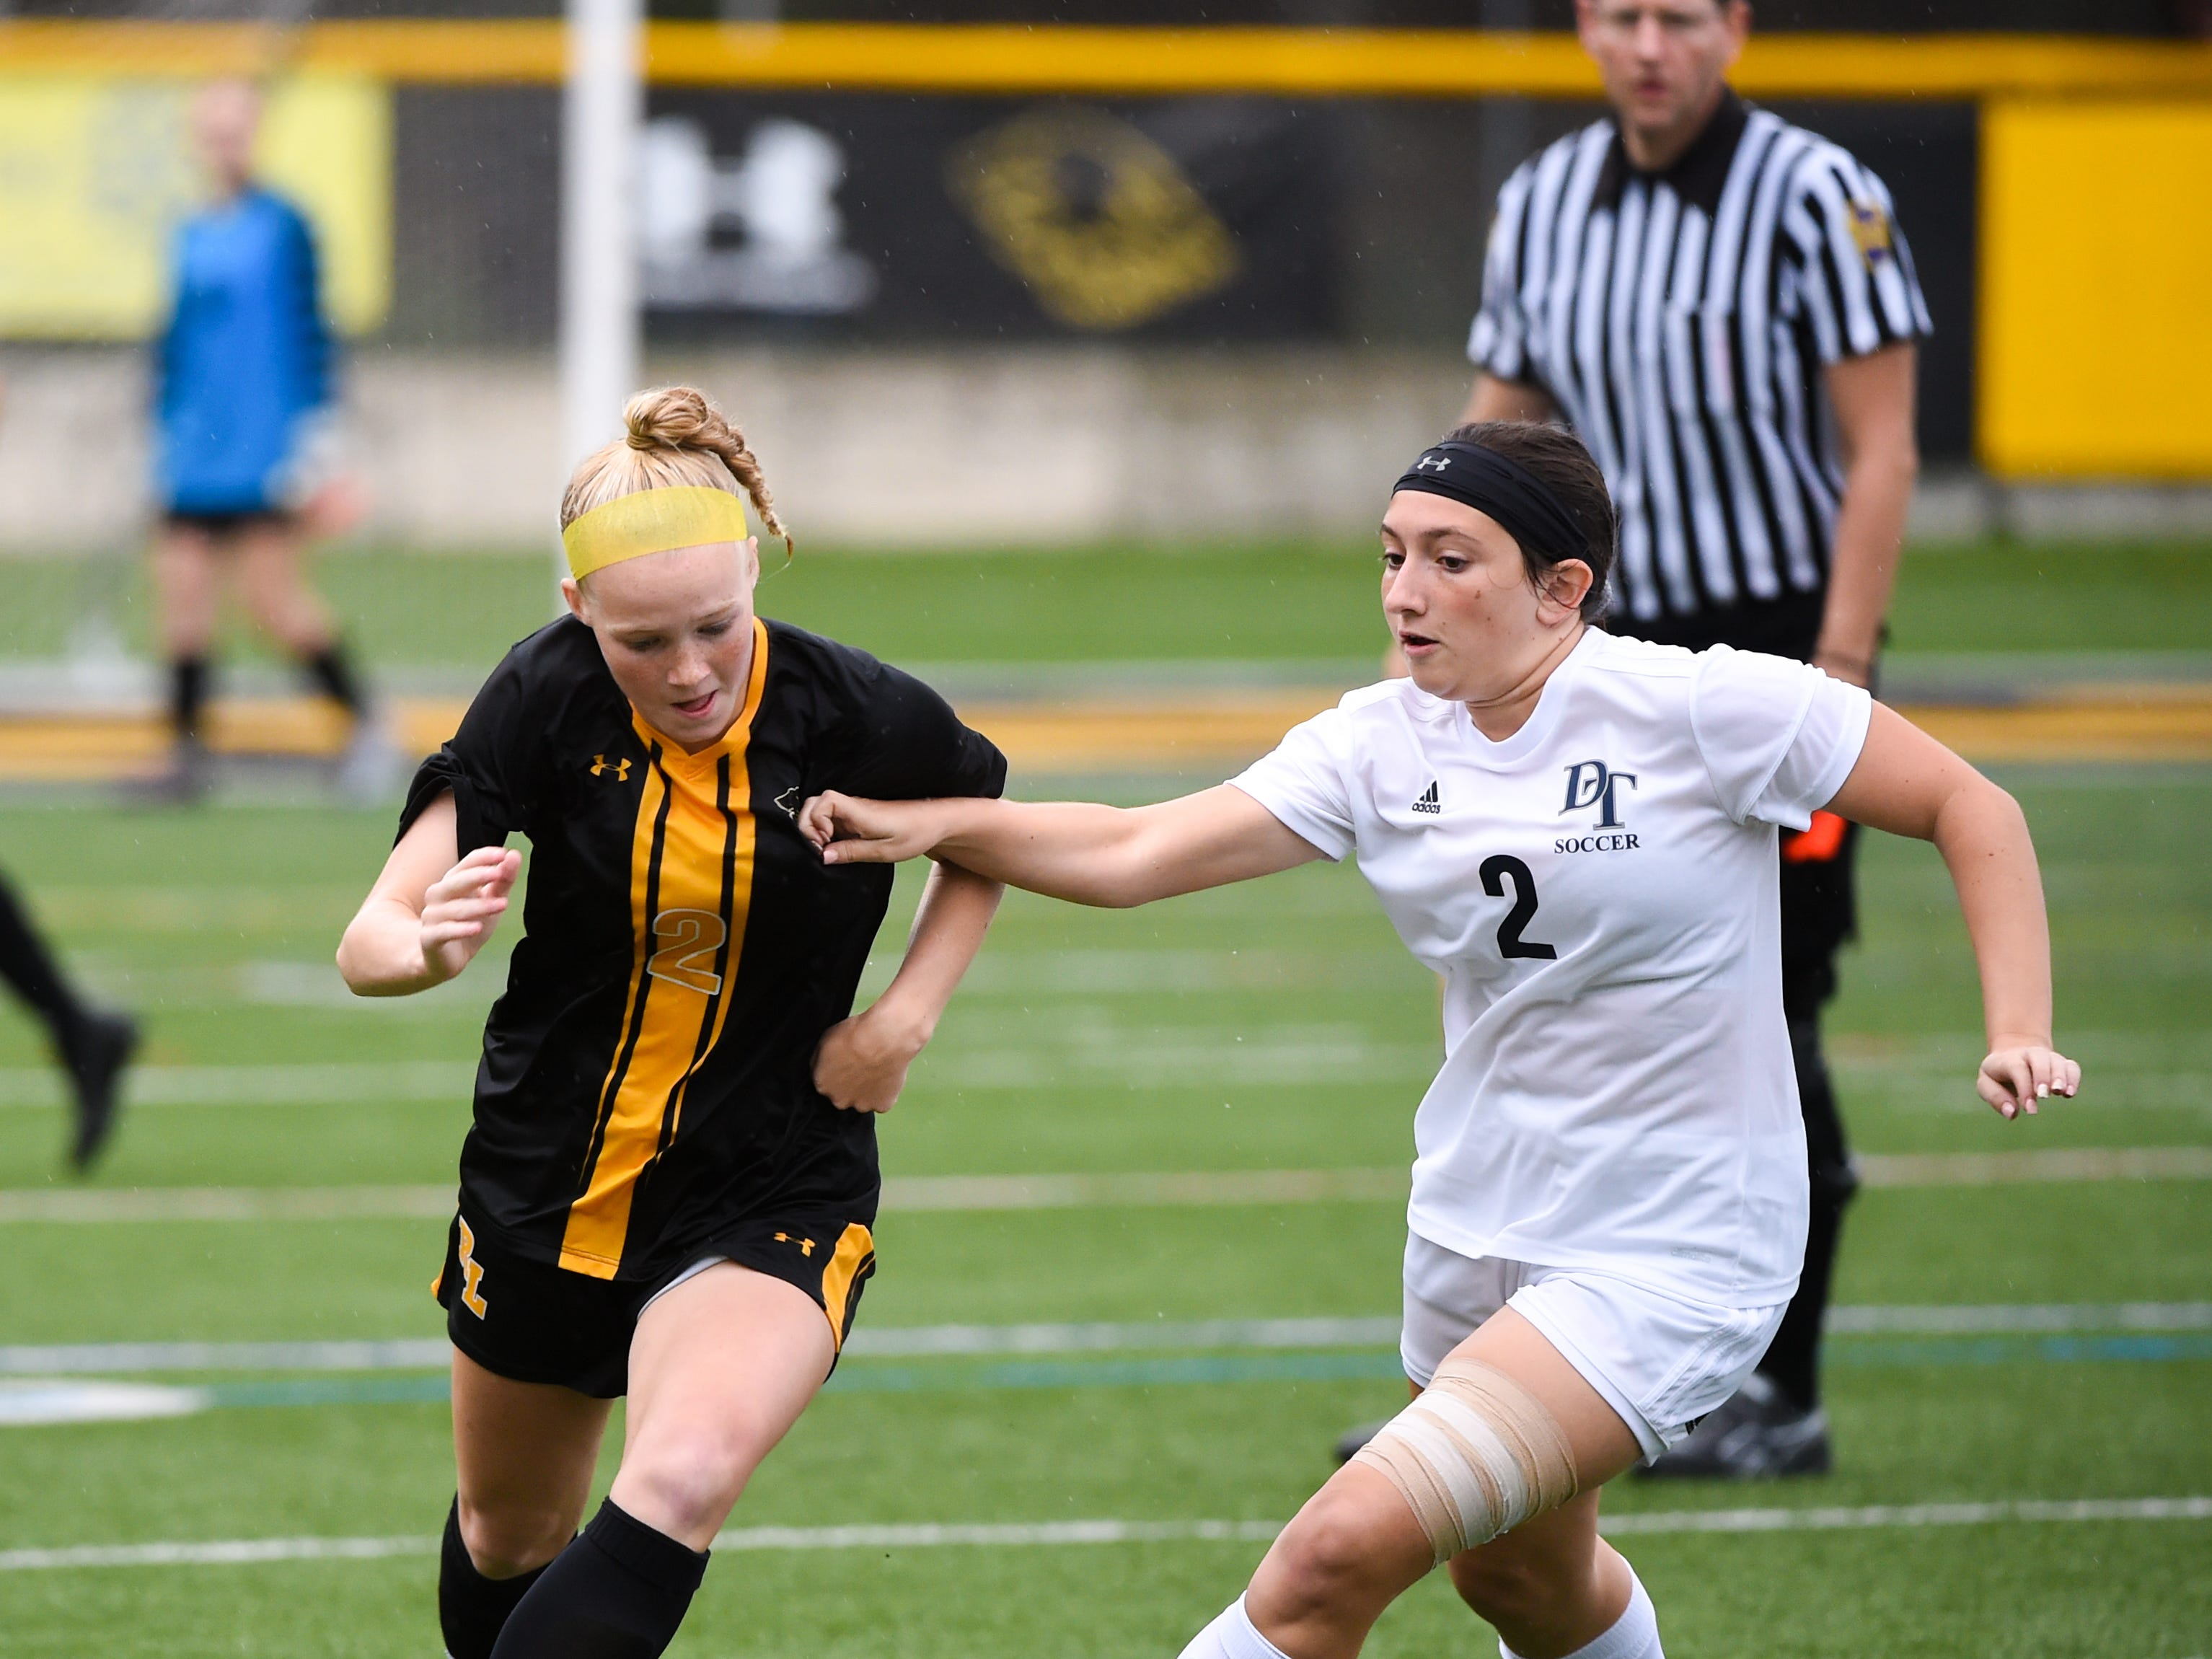 Red Lion's Natalie Sindlinger (2), left, looks to steal the ball from Dallastown's Megan Kelly (2), right, October 11, 2018. The Lady Lions beat the Wildcats 4-0.